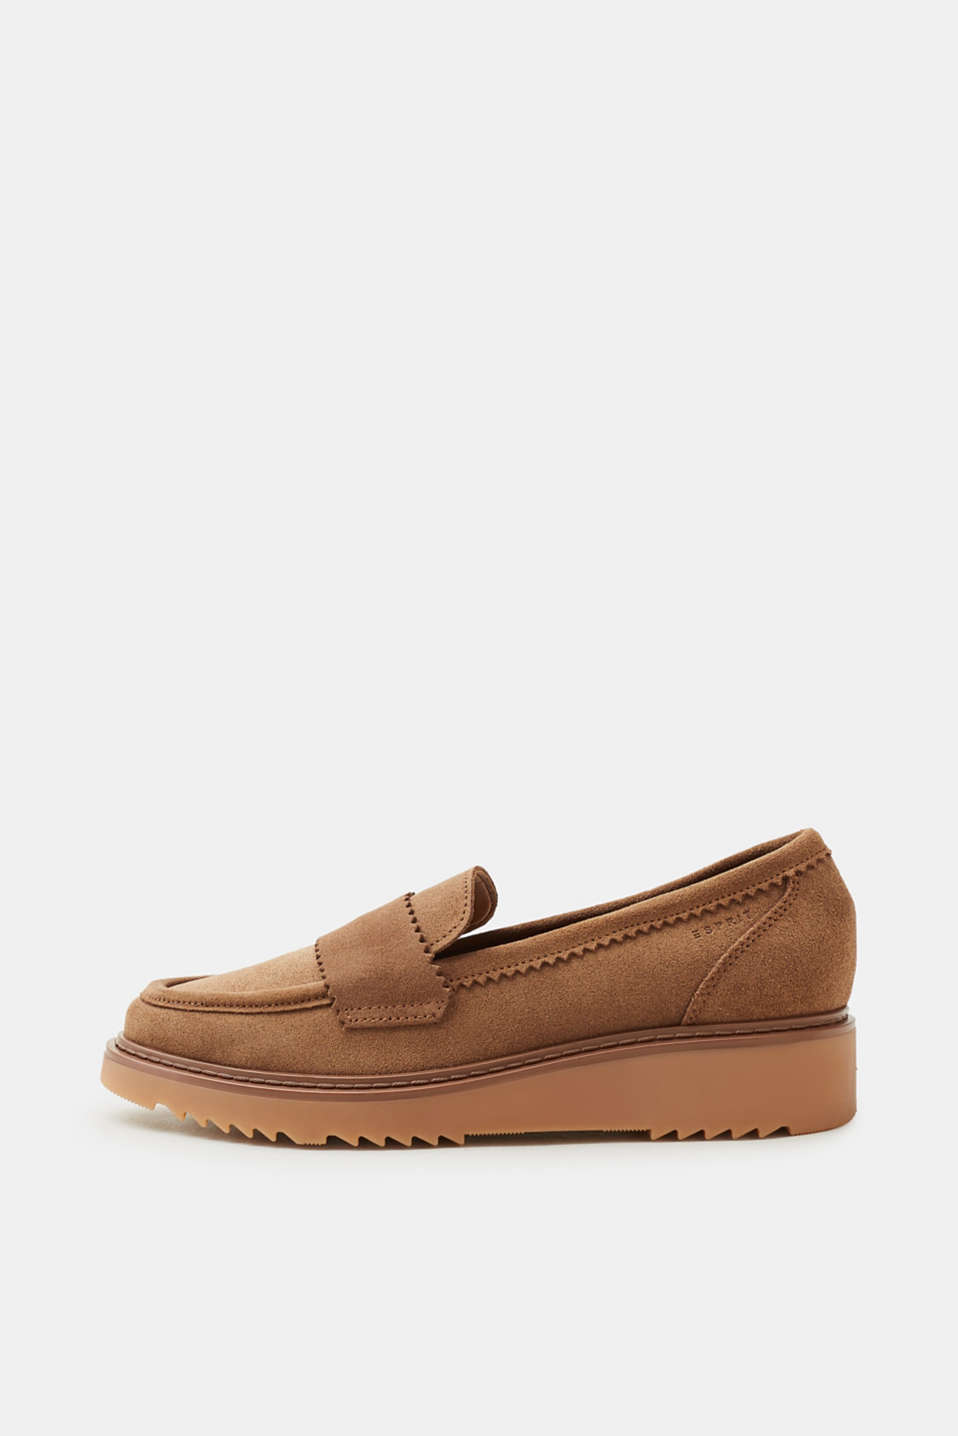 Esprit - Leather loafers with a platform sole